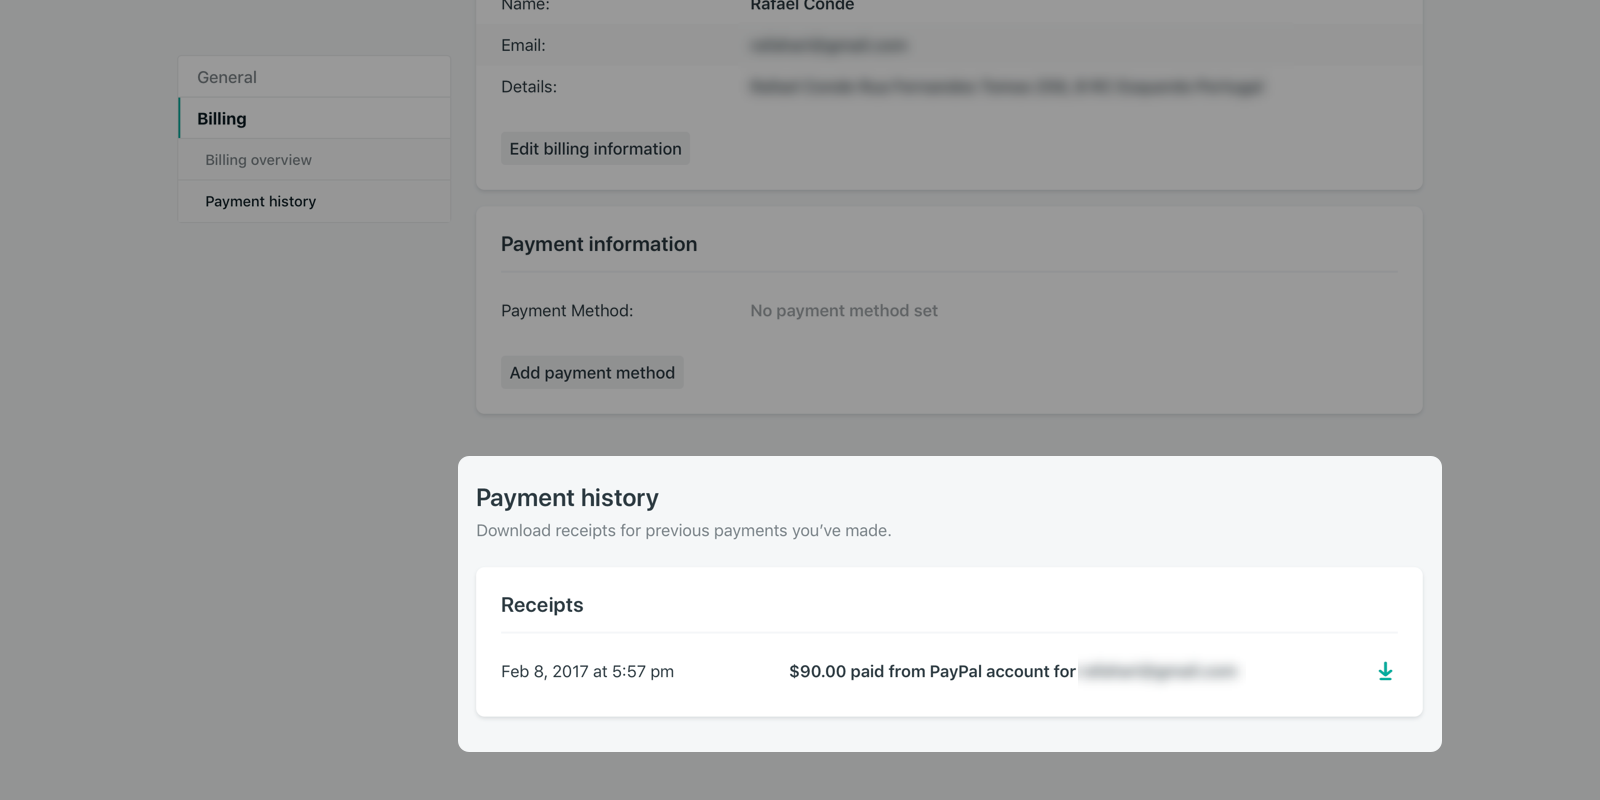 Payment history, listing each receipt with date, amount, account, and download link